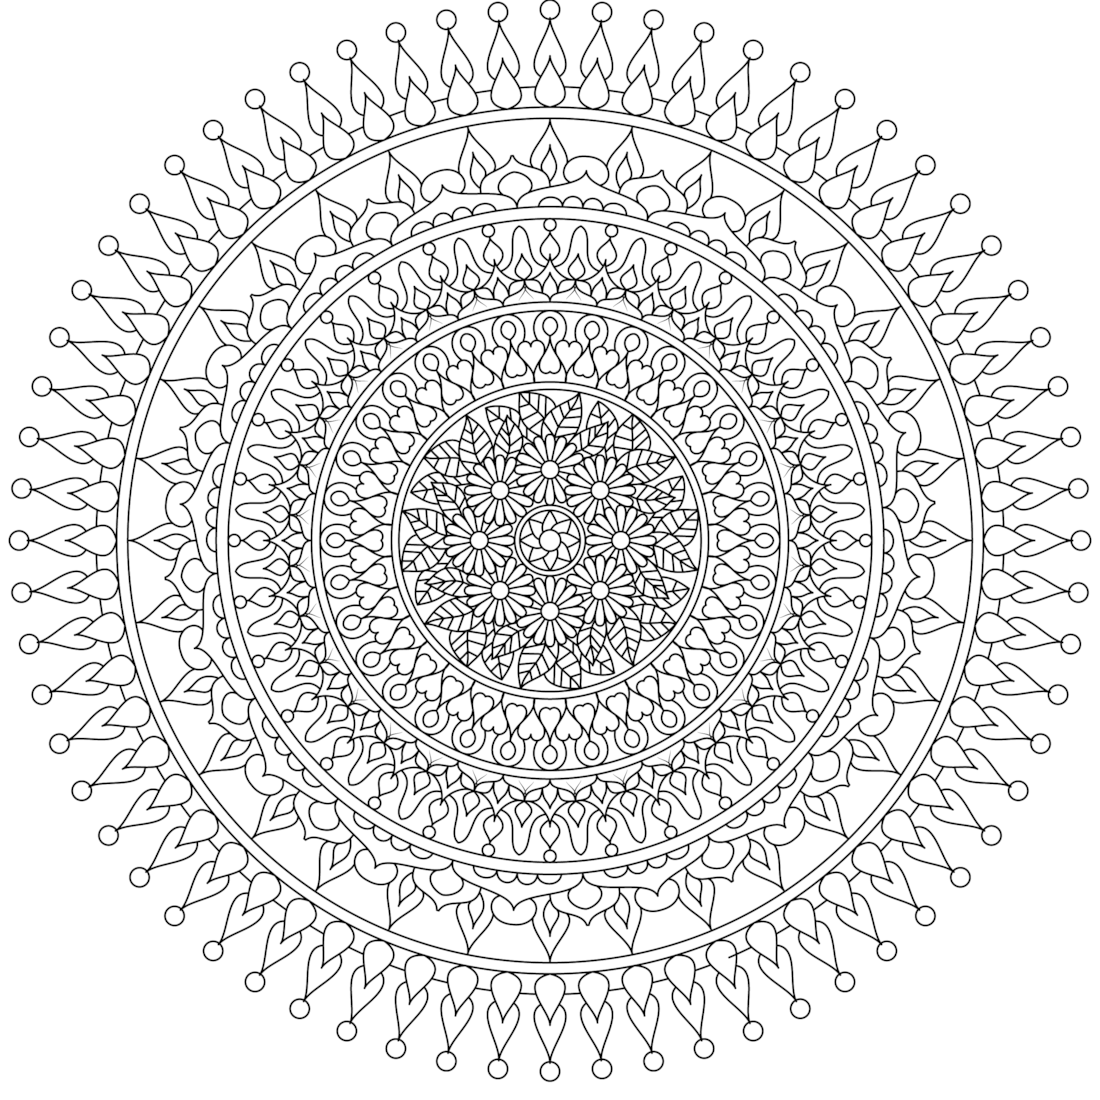 Moon Heart Coloring Page Heart Coloring Pages Coloring Pages Mandala Coloring Books